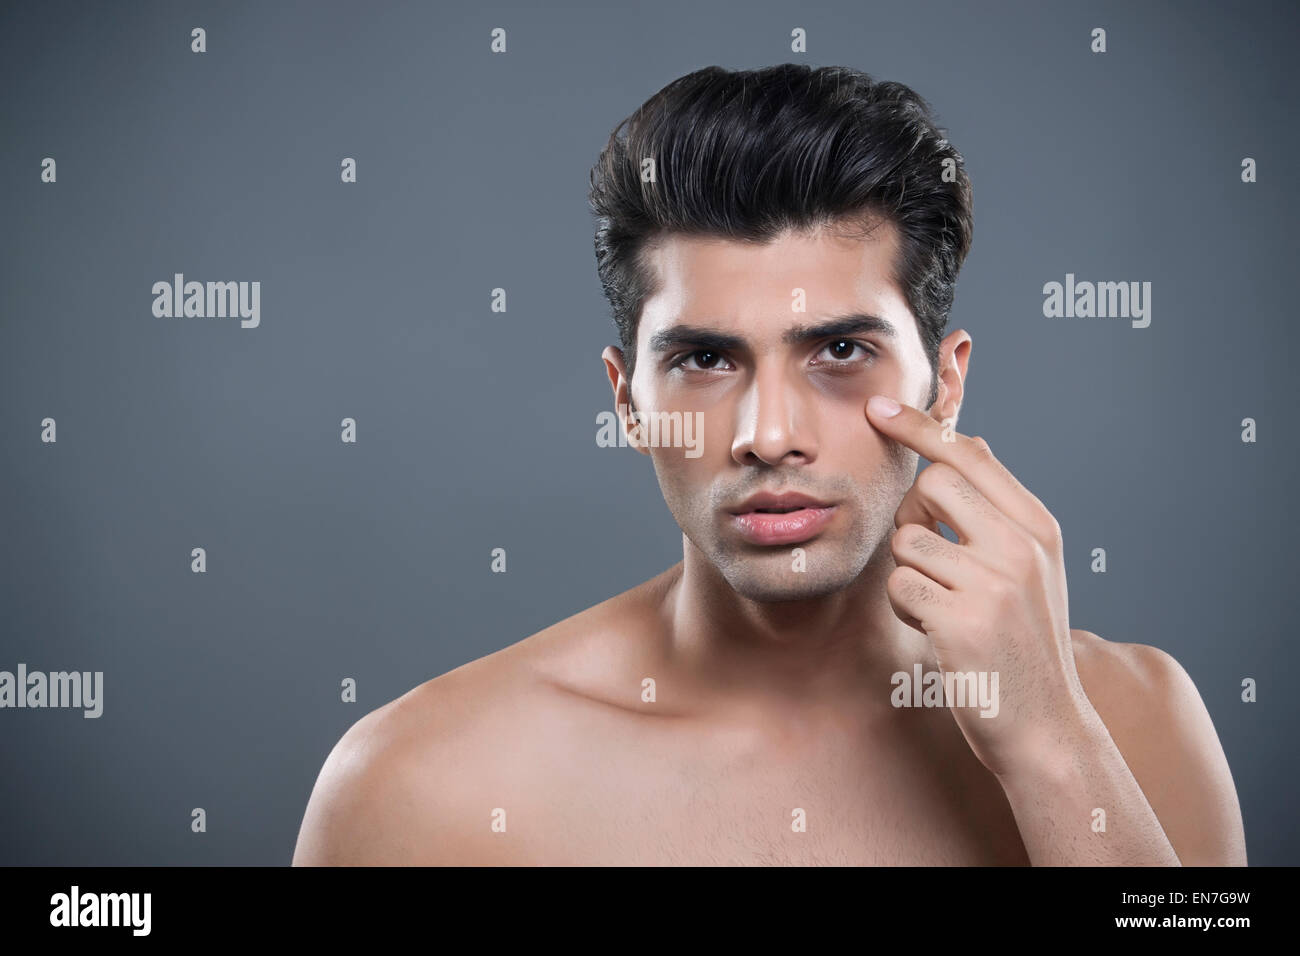 Portrait of young man with bruised eye - Stock Image